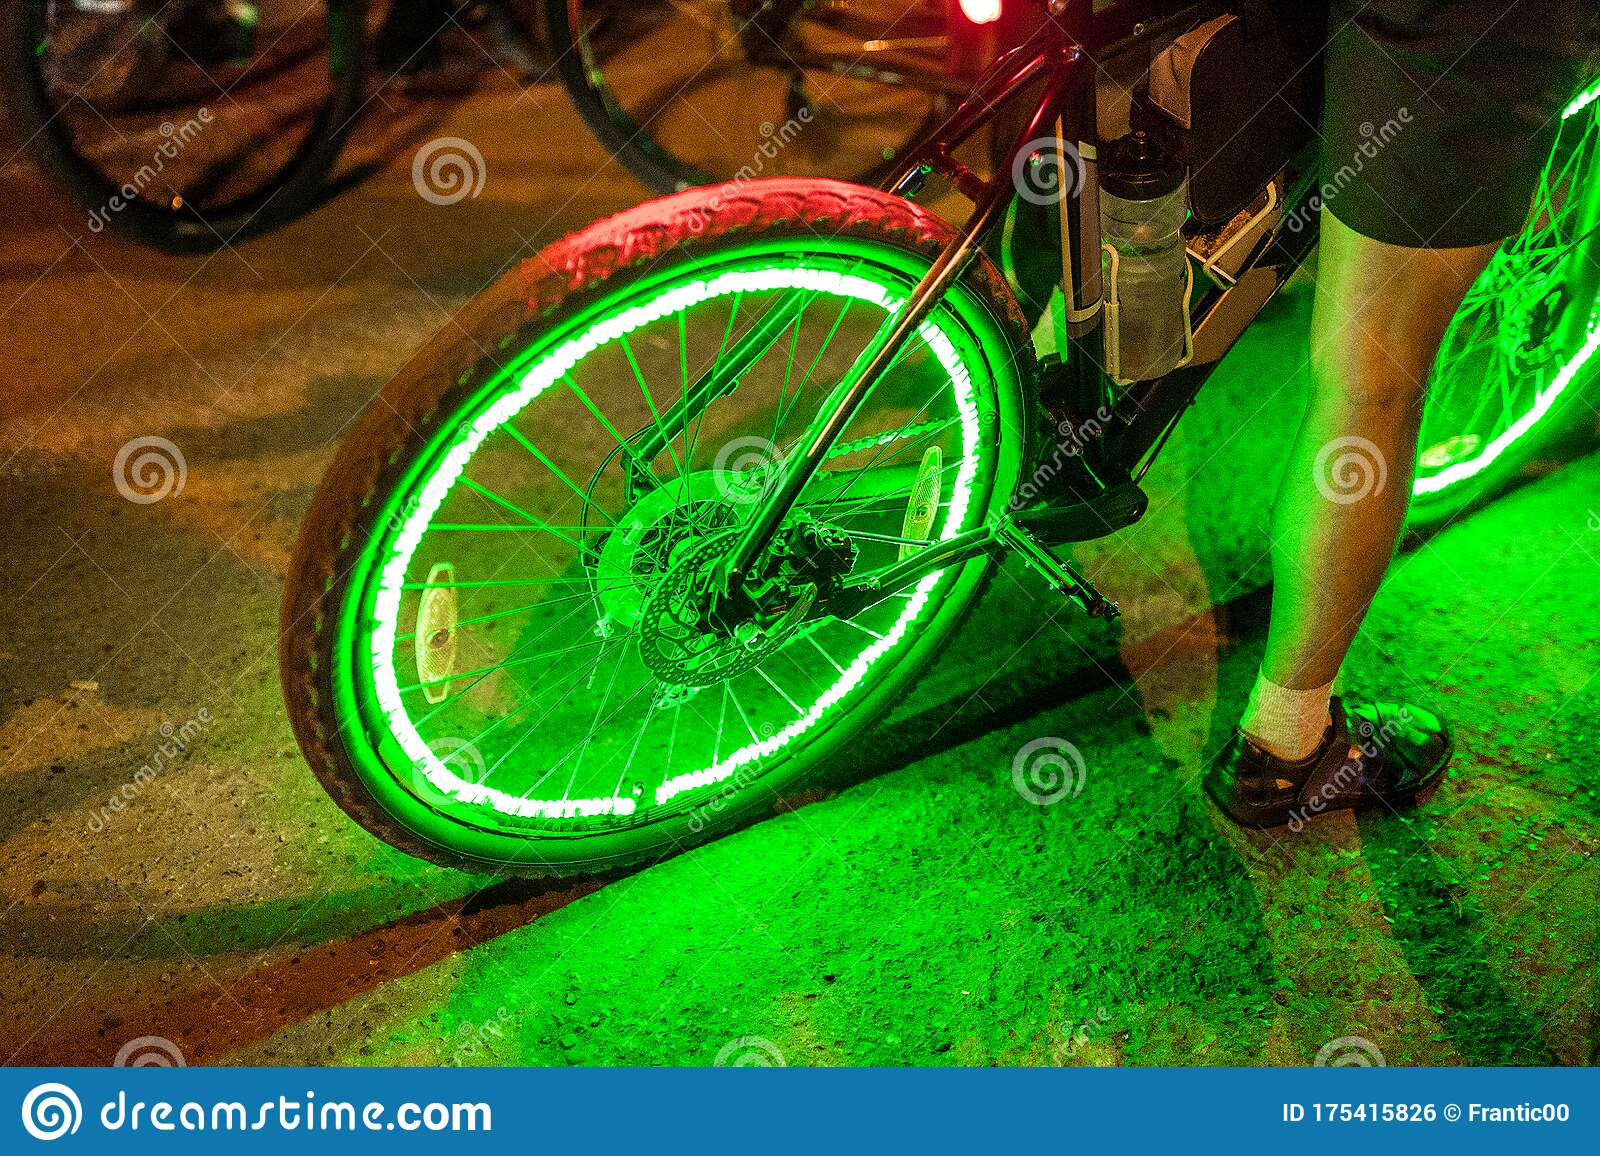 Neon Lights And Illumination On The Wheel Of A Bicycle At Night The Concept Of Safety Of Traffic In The Dark Stock Photo Image Of Design Dark 175415826 Traffic light bicycle night glow neon